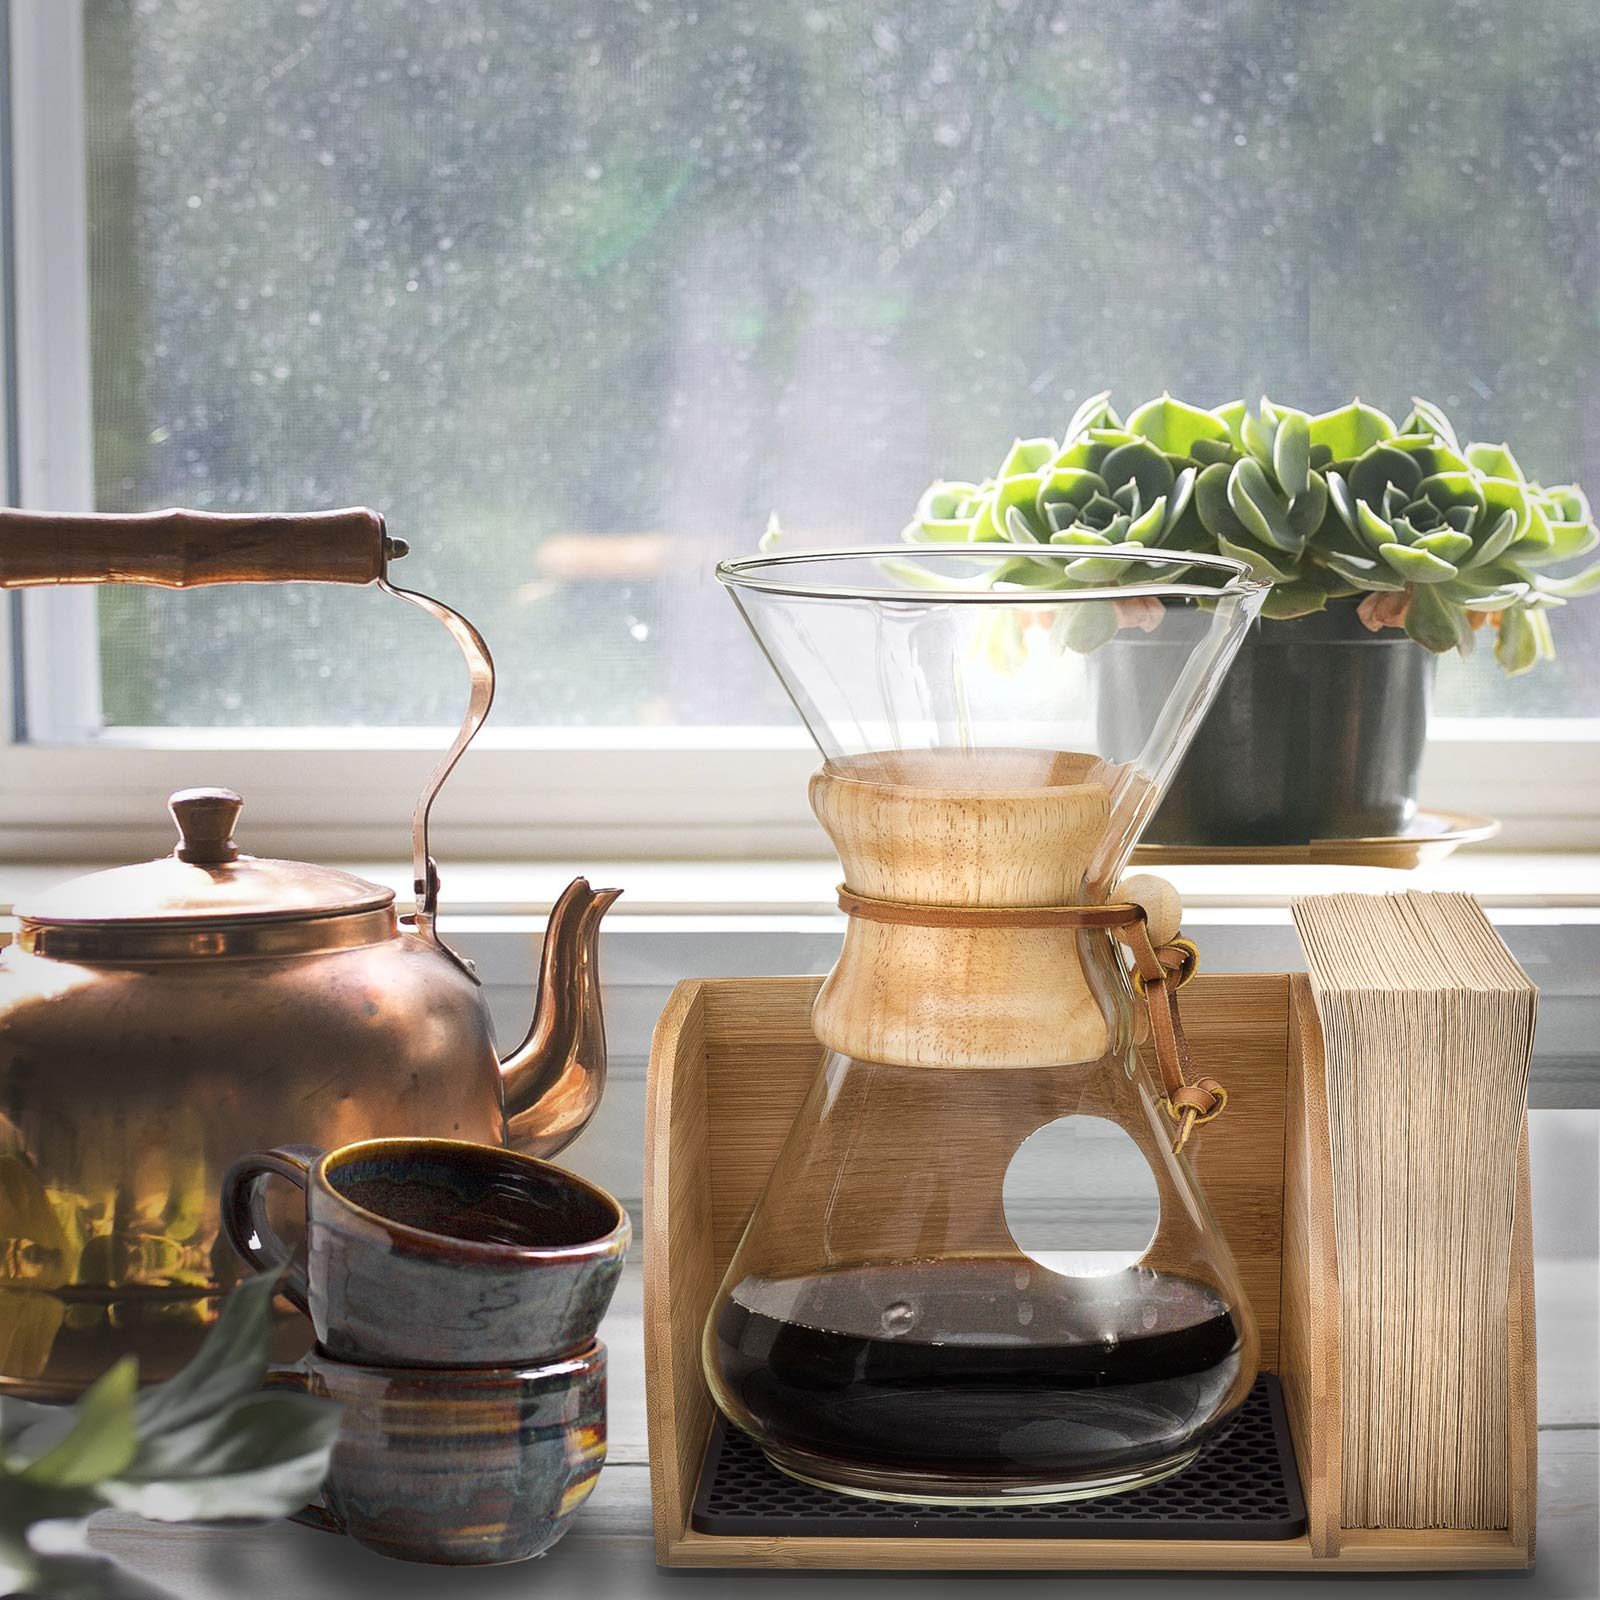 Chemex Coffee Maker Organizer with Silicone Mat | Eco-friendly, Durable & Water Resistant Bamboo | Designed for Baratza Encore Burr Grinders, Chemex Coffee Makers & Chemex Filters by Drip & Brew Coffee Company (Image #5)